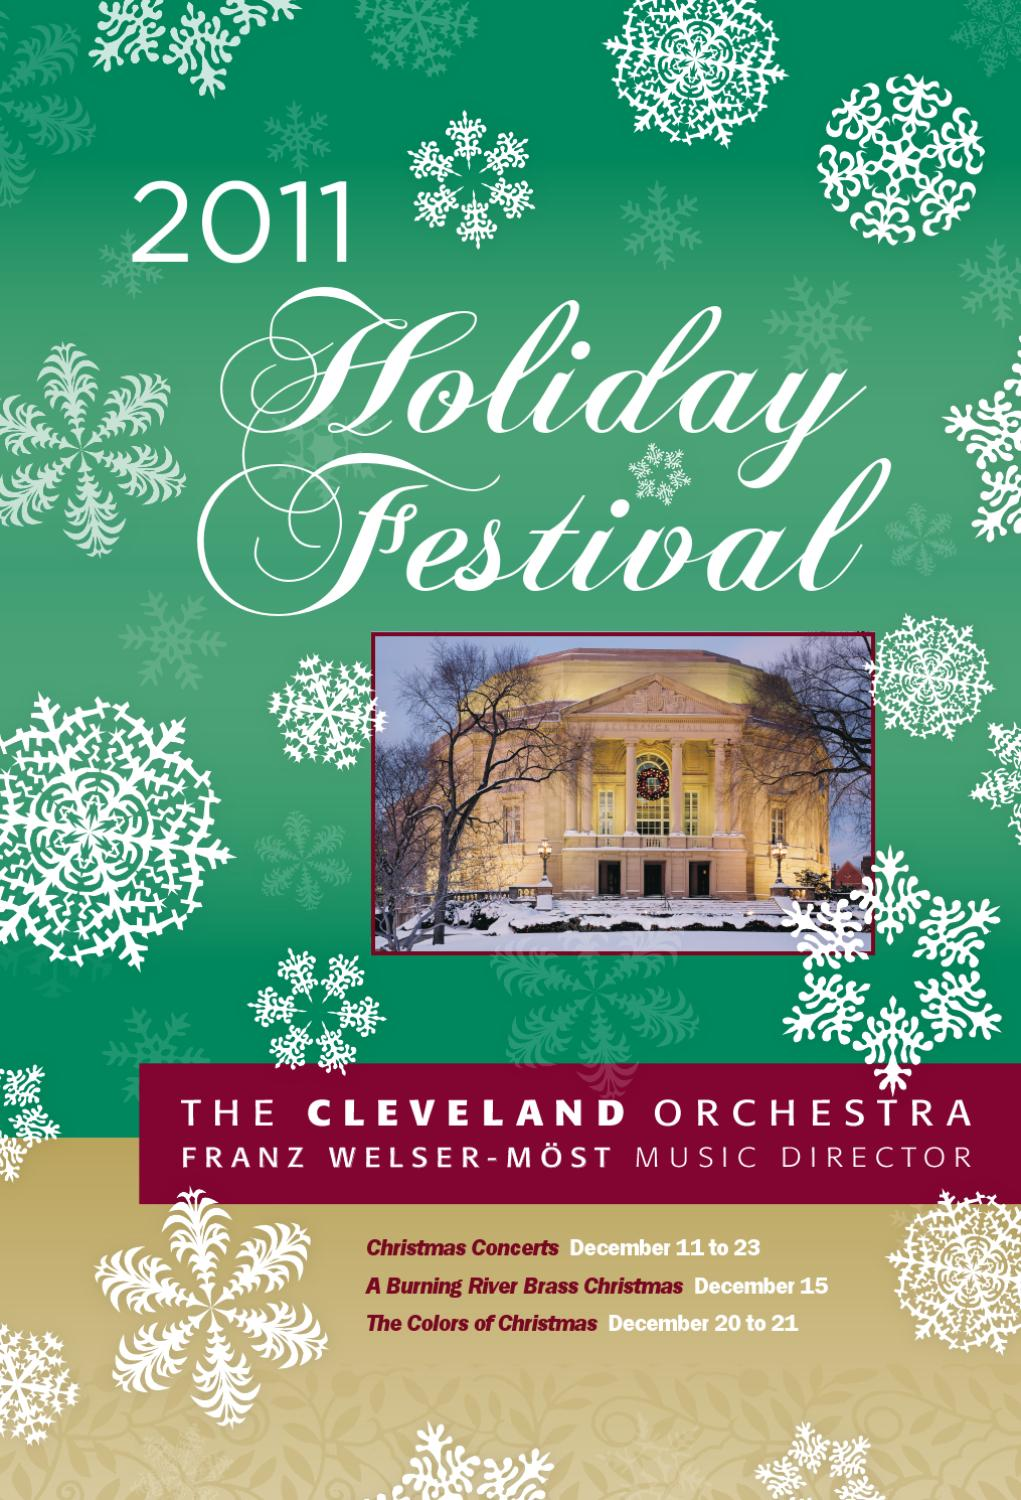 The 2011 Cleveland Orchestra Holiday Festival Program By